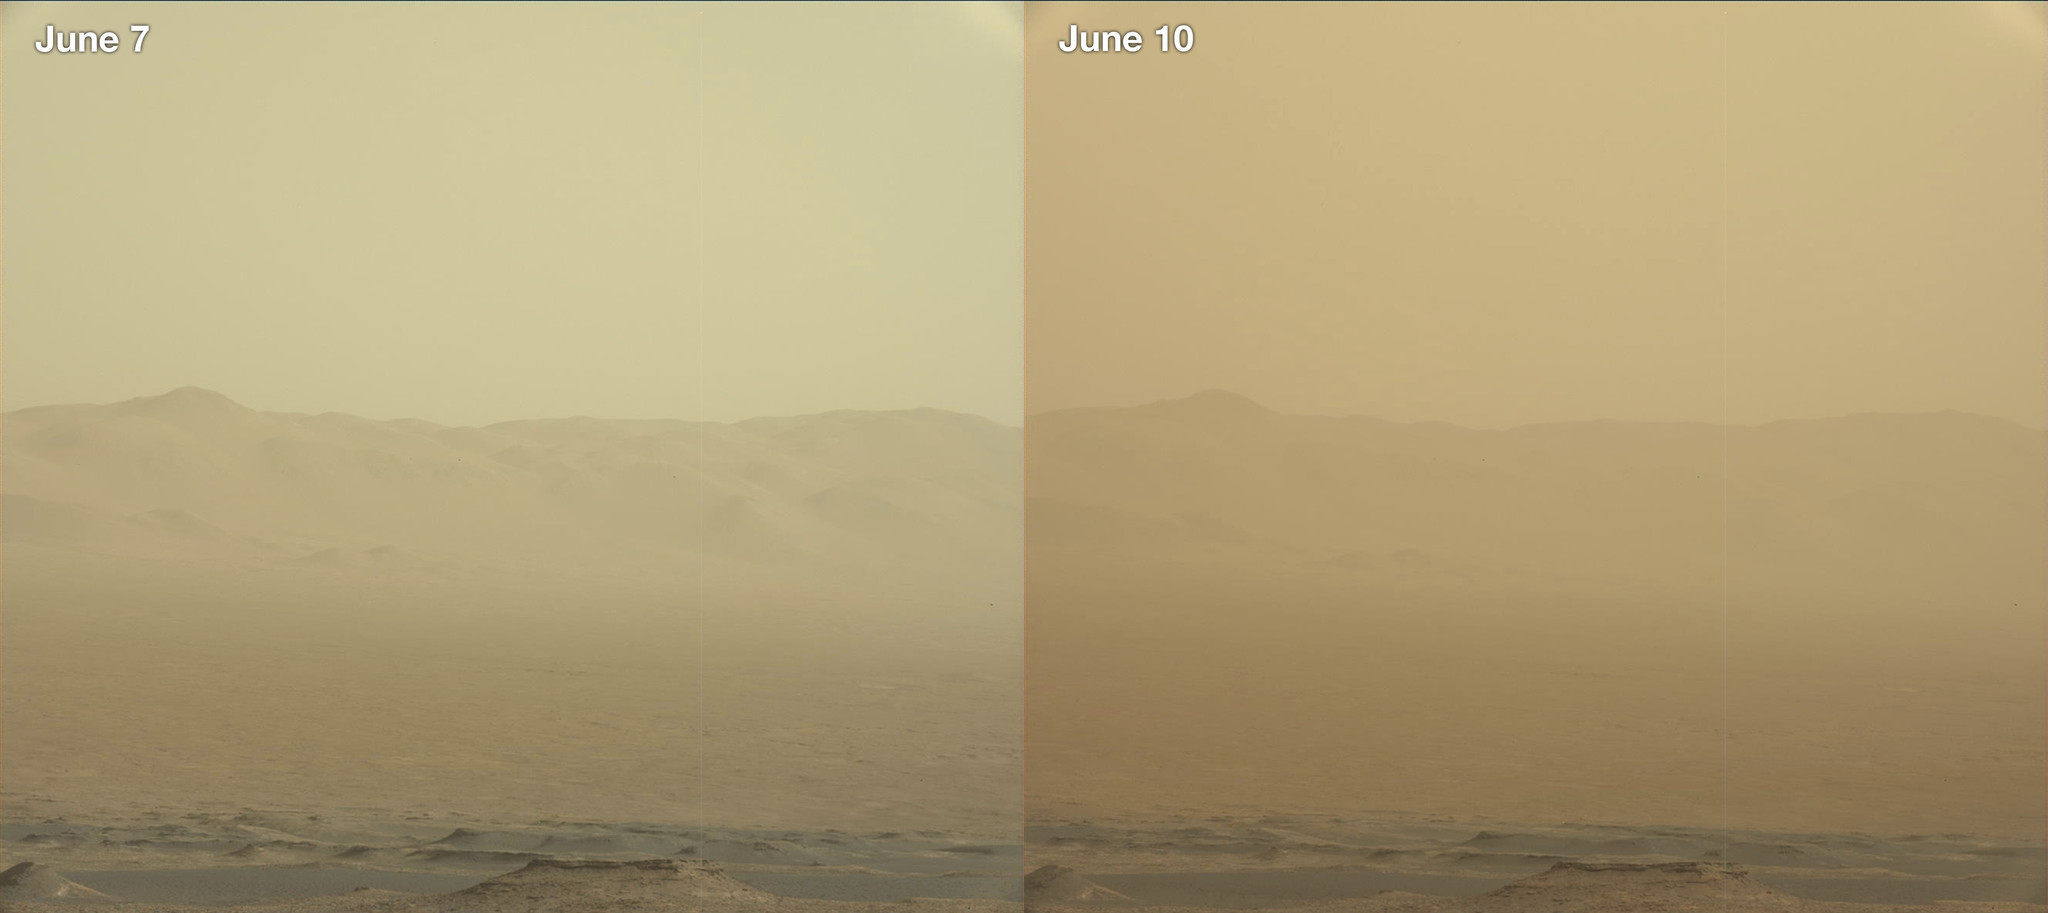 Nasa Rover Knocked Out As Gigantic Dust Storm Envelops